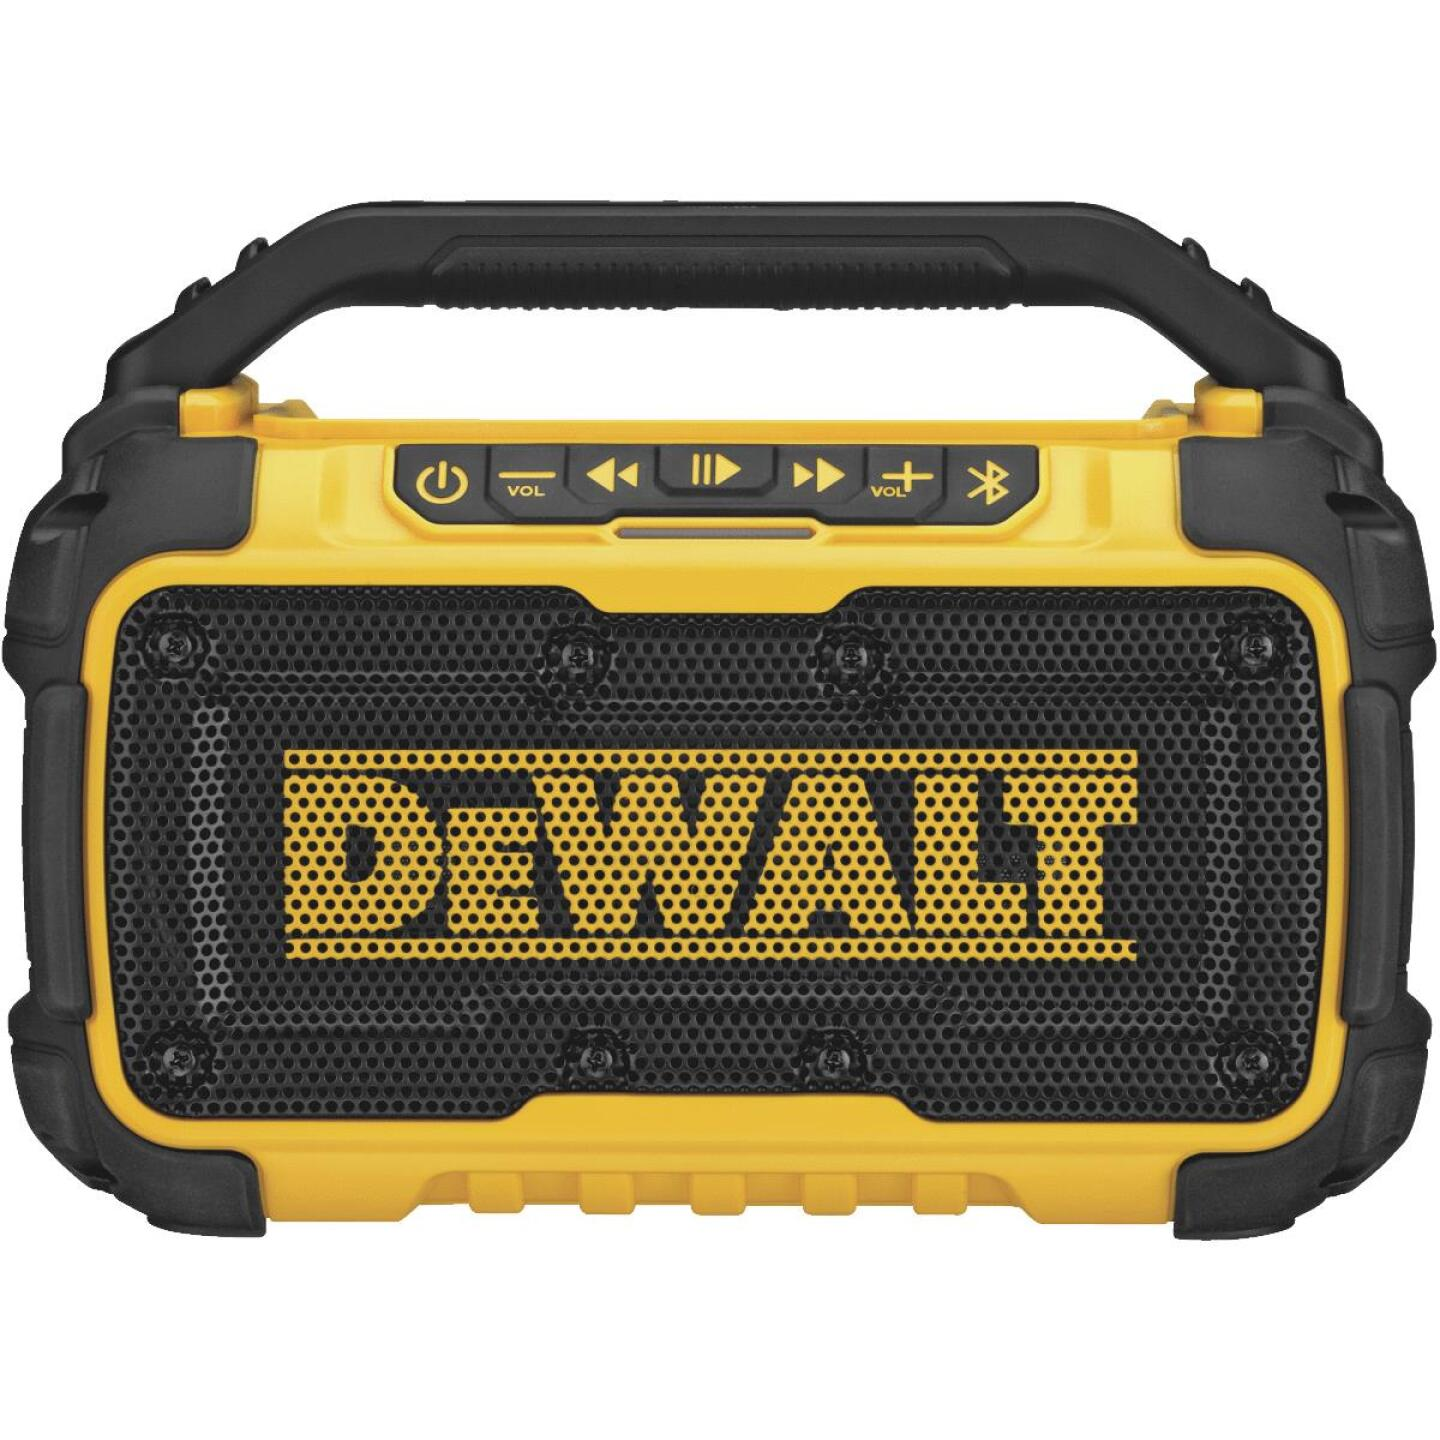 DeWalt 12 Volt/20 Volt MAX Lithium-Ion Jobsite Corded/Cordless Bluetooth Speaker (Bare Tool) Image 1